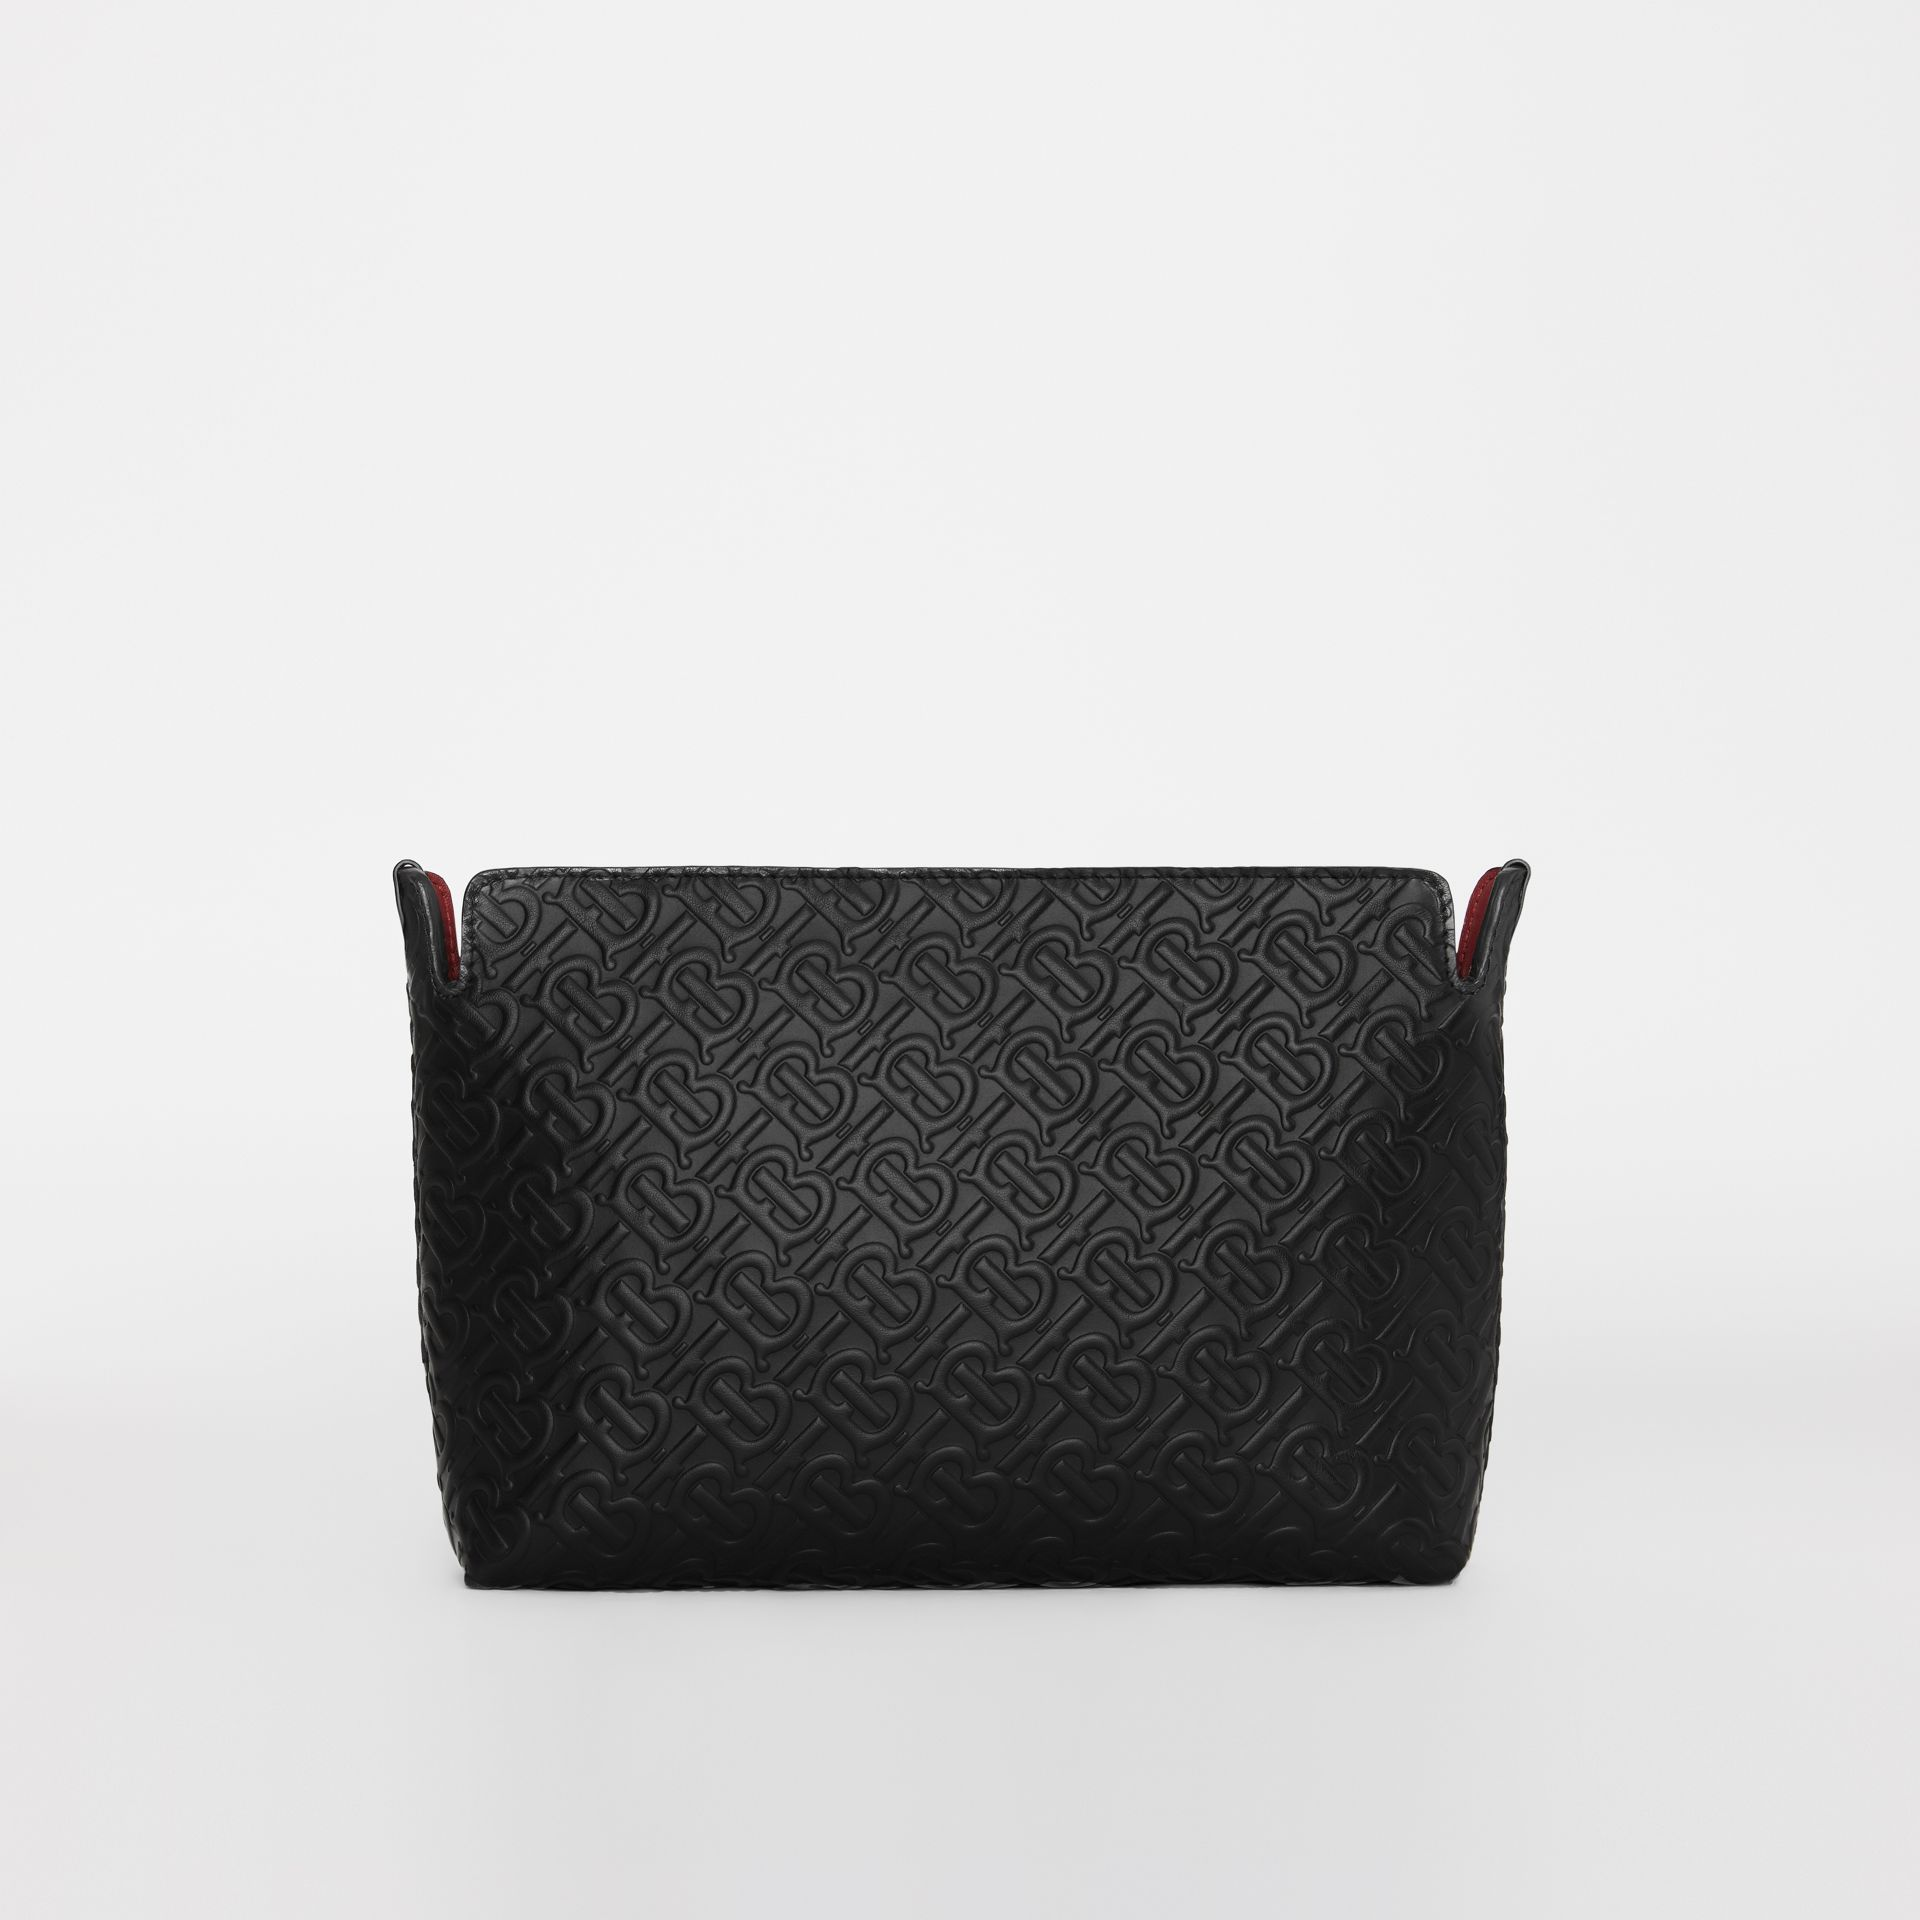 Medium Monogram Leather Clutch in Black - Women | Burberry Australia - gallery image 6